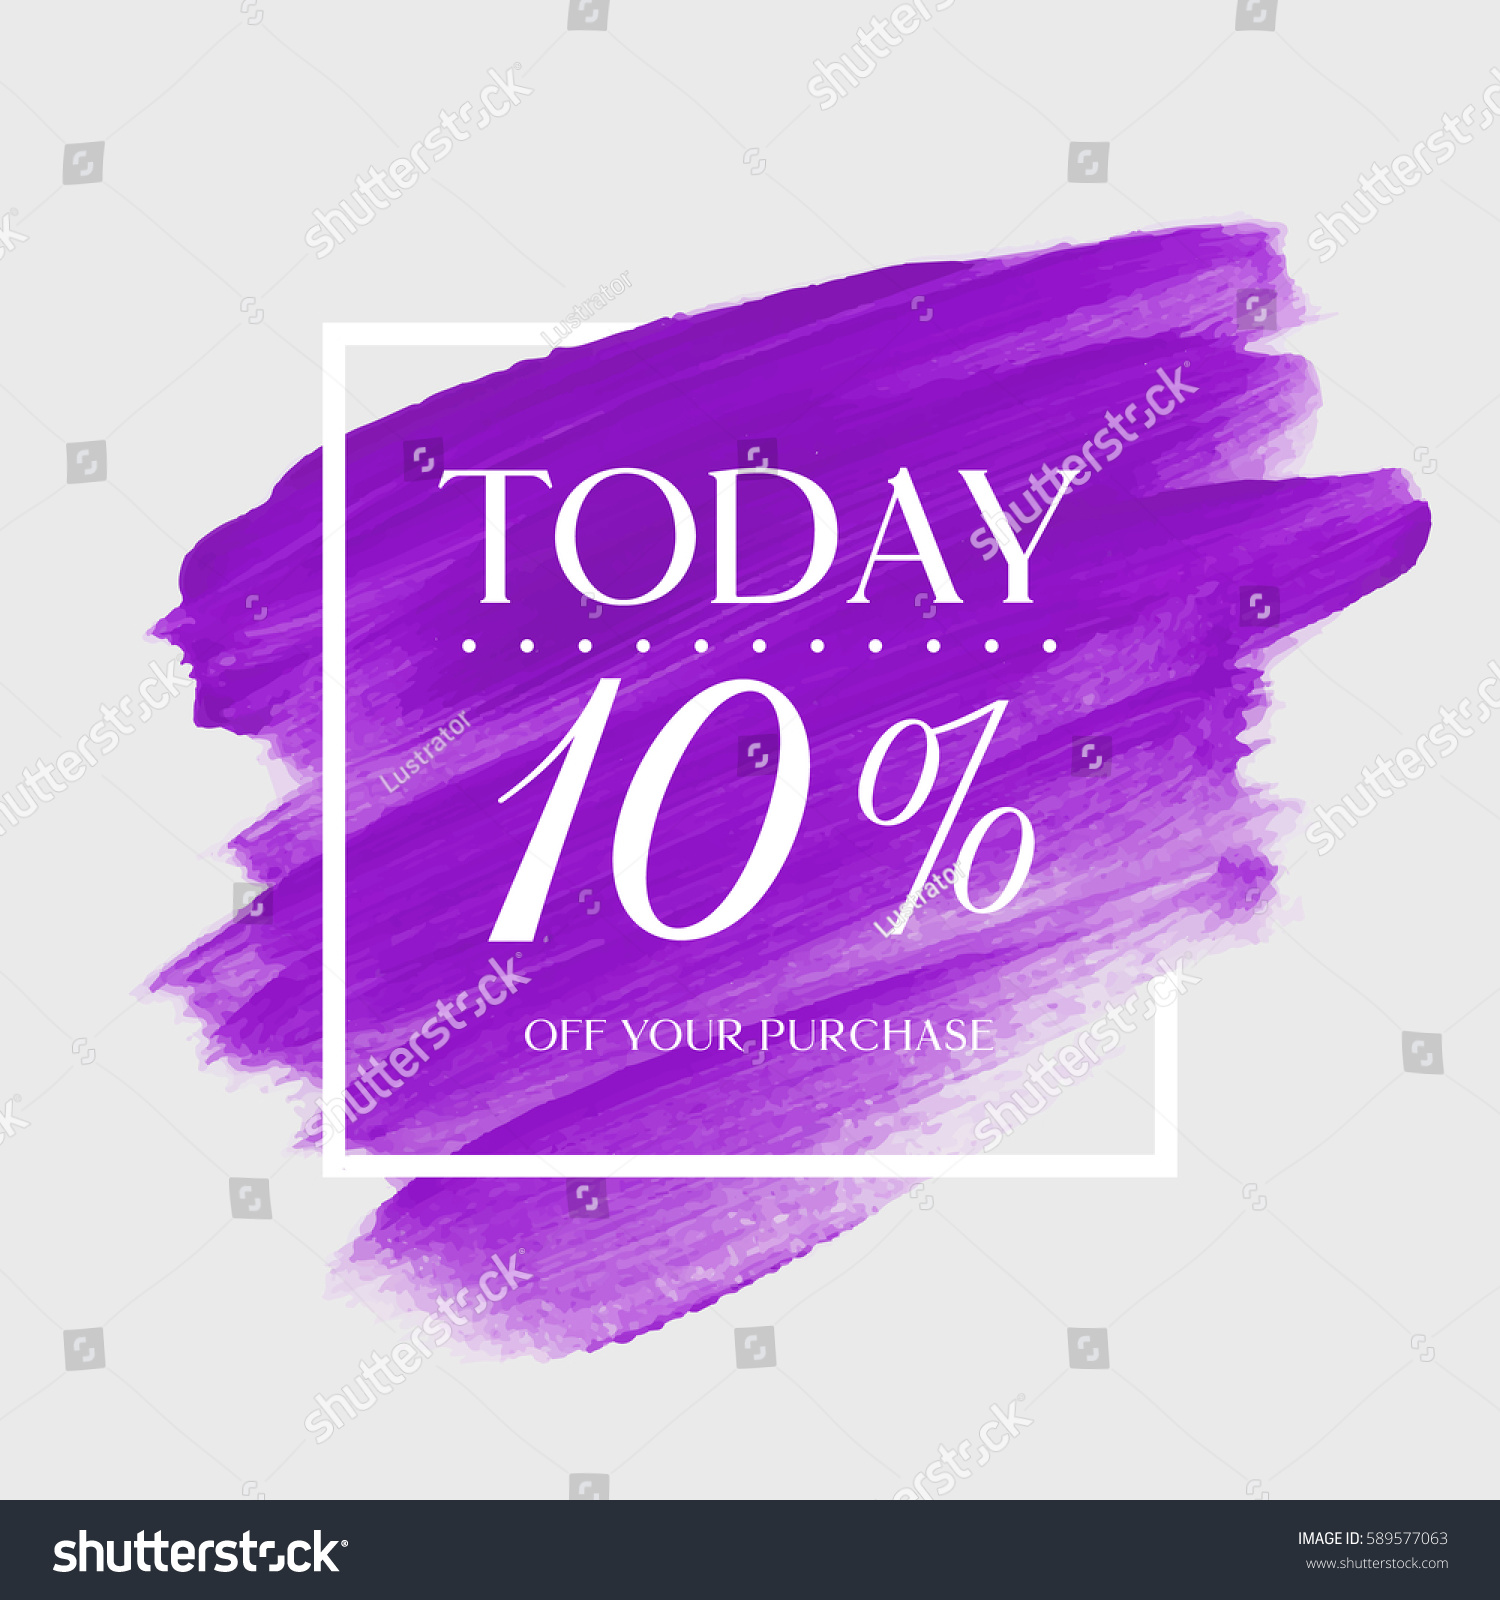 sale todays special 10 off sign stock vector 589577063 shutterstock